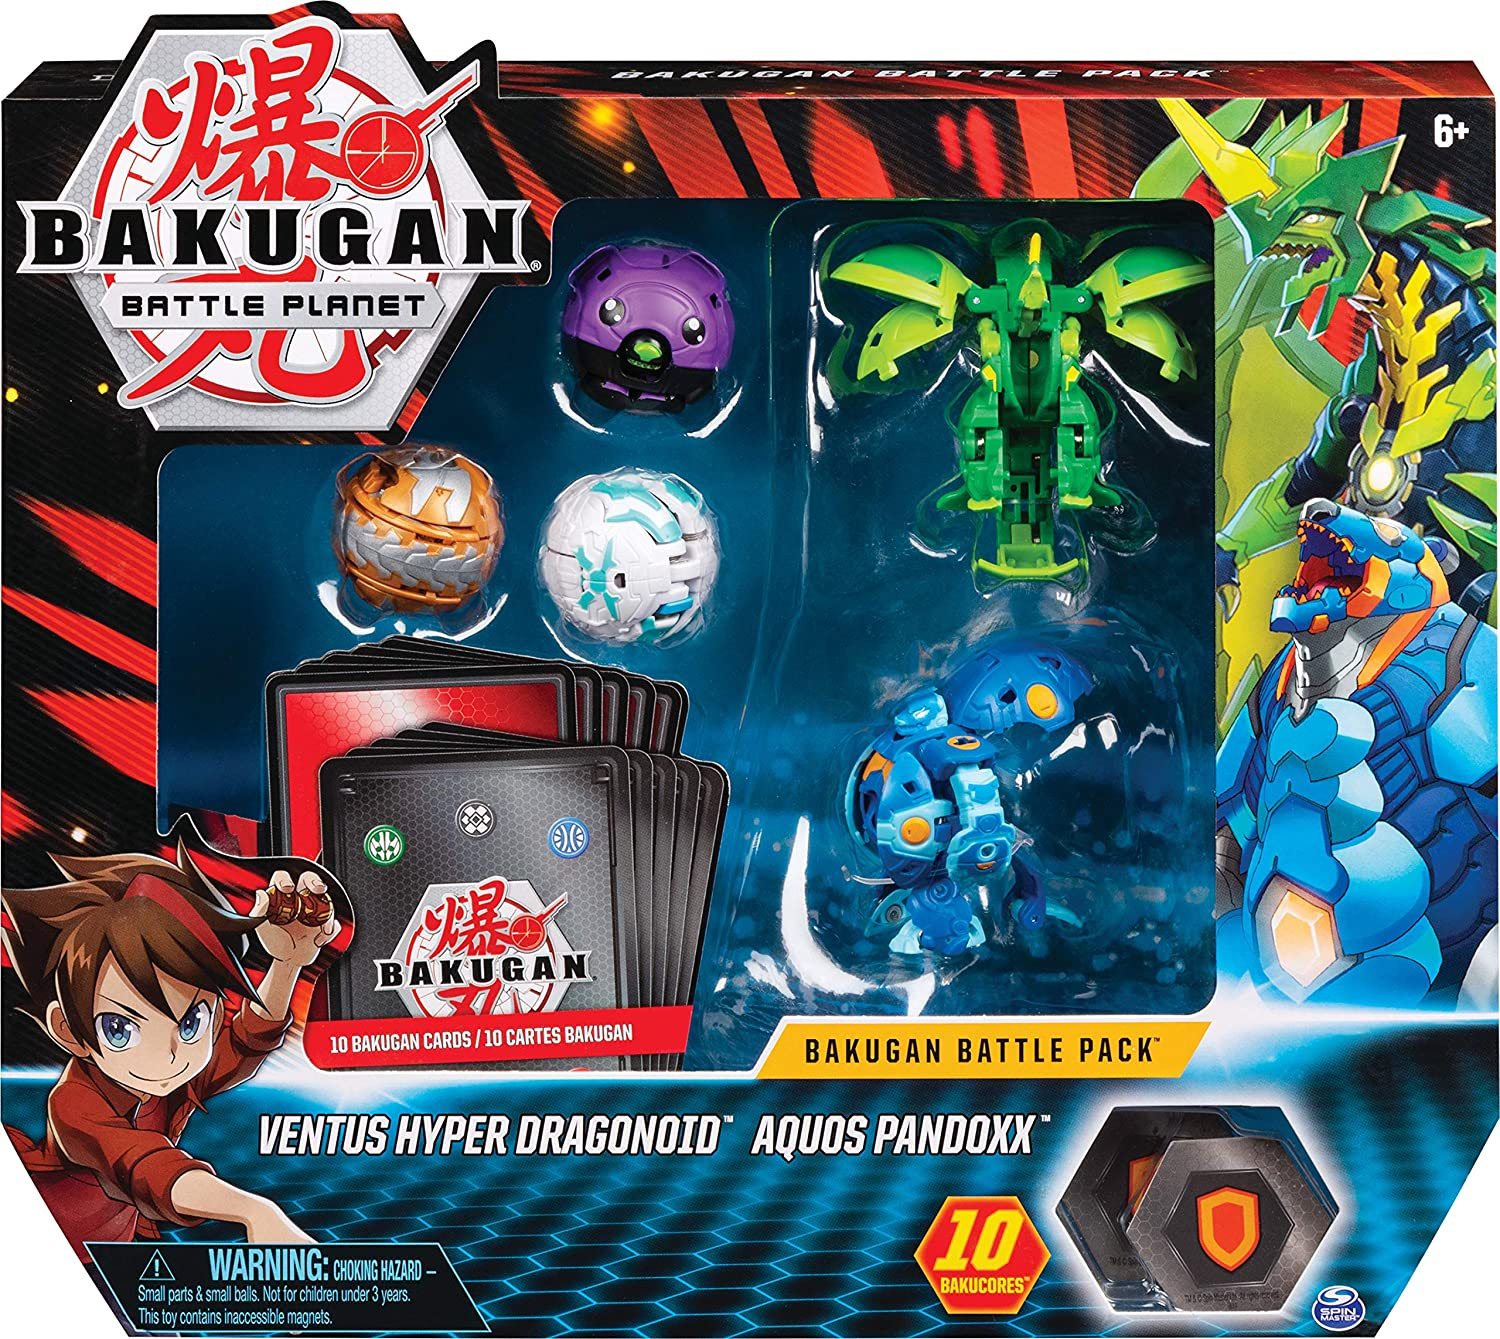 Bakugan- Battle Pack, 5 Bolas, 3 clásicos y 2 Ultra, Fire Knight Blanco, Mini Bear Negro y Long Body Dragon Oro, Panda Azul y Pro Dragonoid Verde, 6058572: Amazon.es: Juguetes y juegos